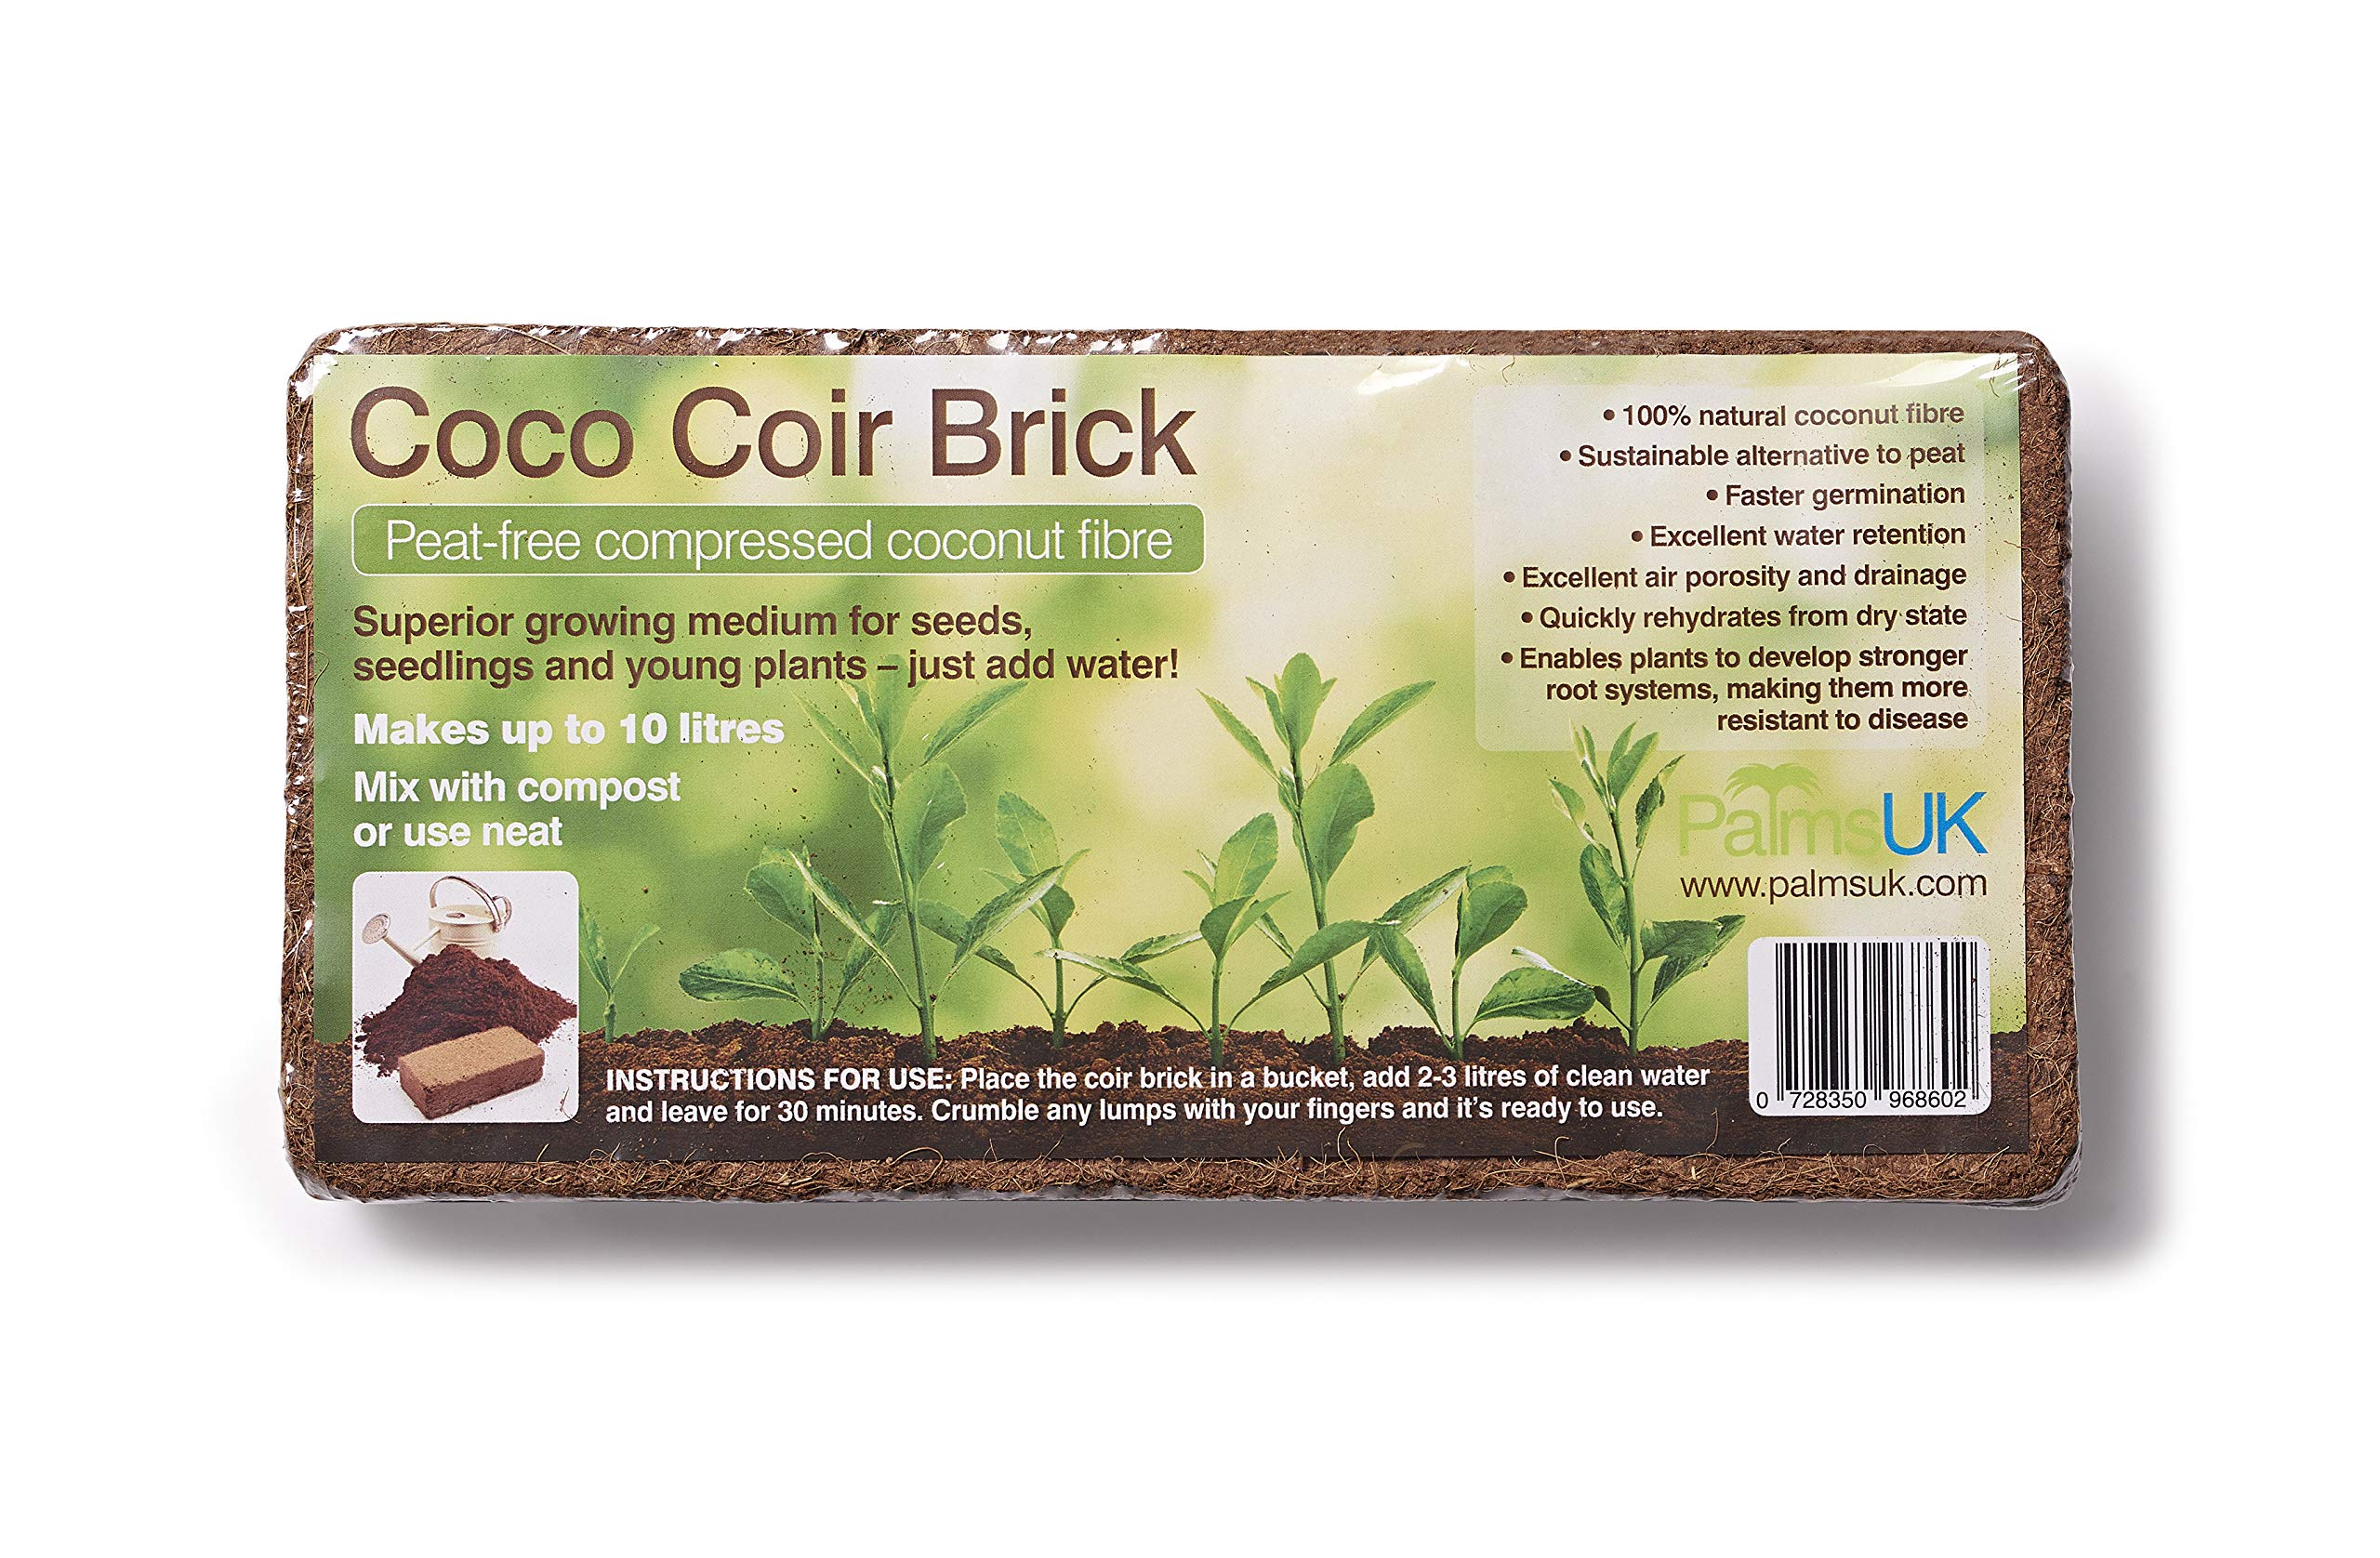 PLANTBOOSTER 1 X 650g ORGANIC COCO PEAT-FREE COIR BRICK - MAKES 9 LITRES